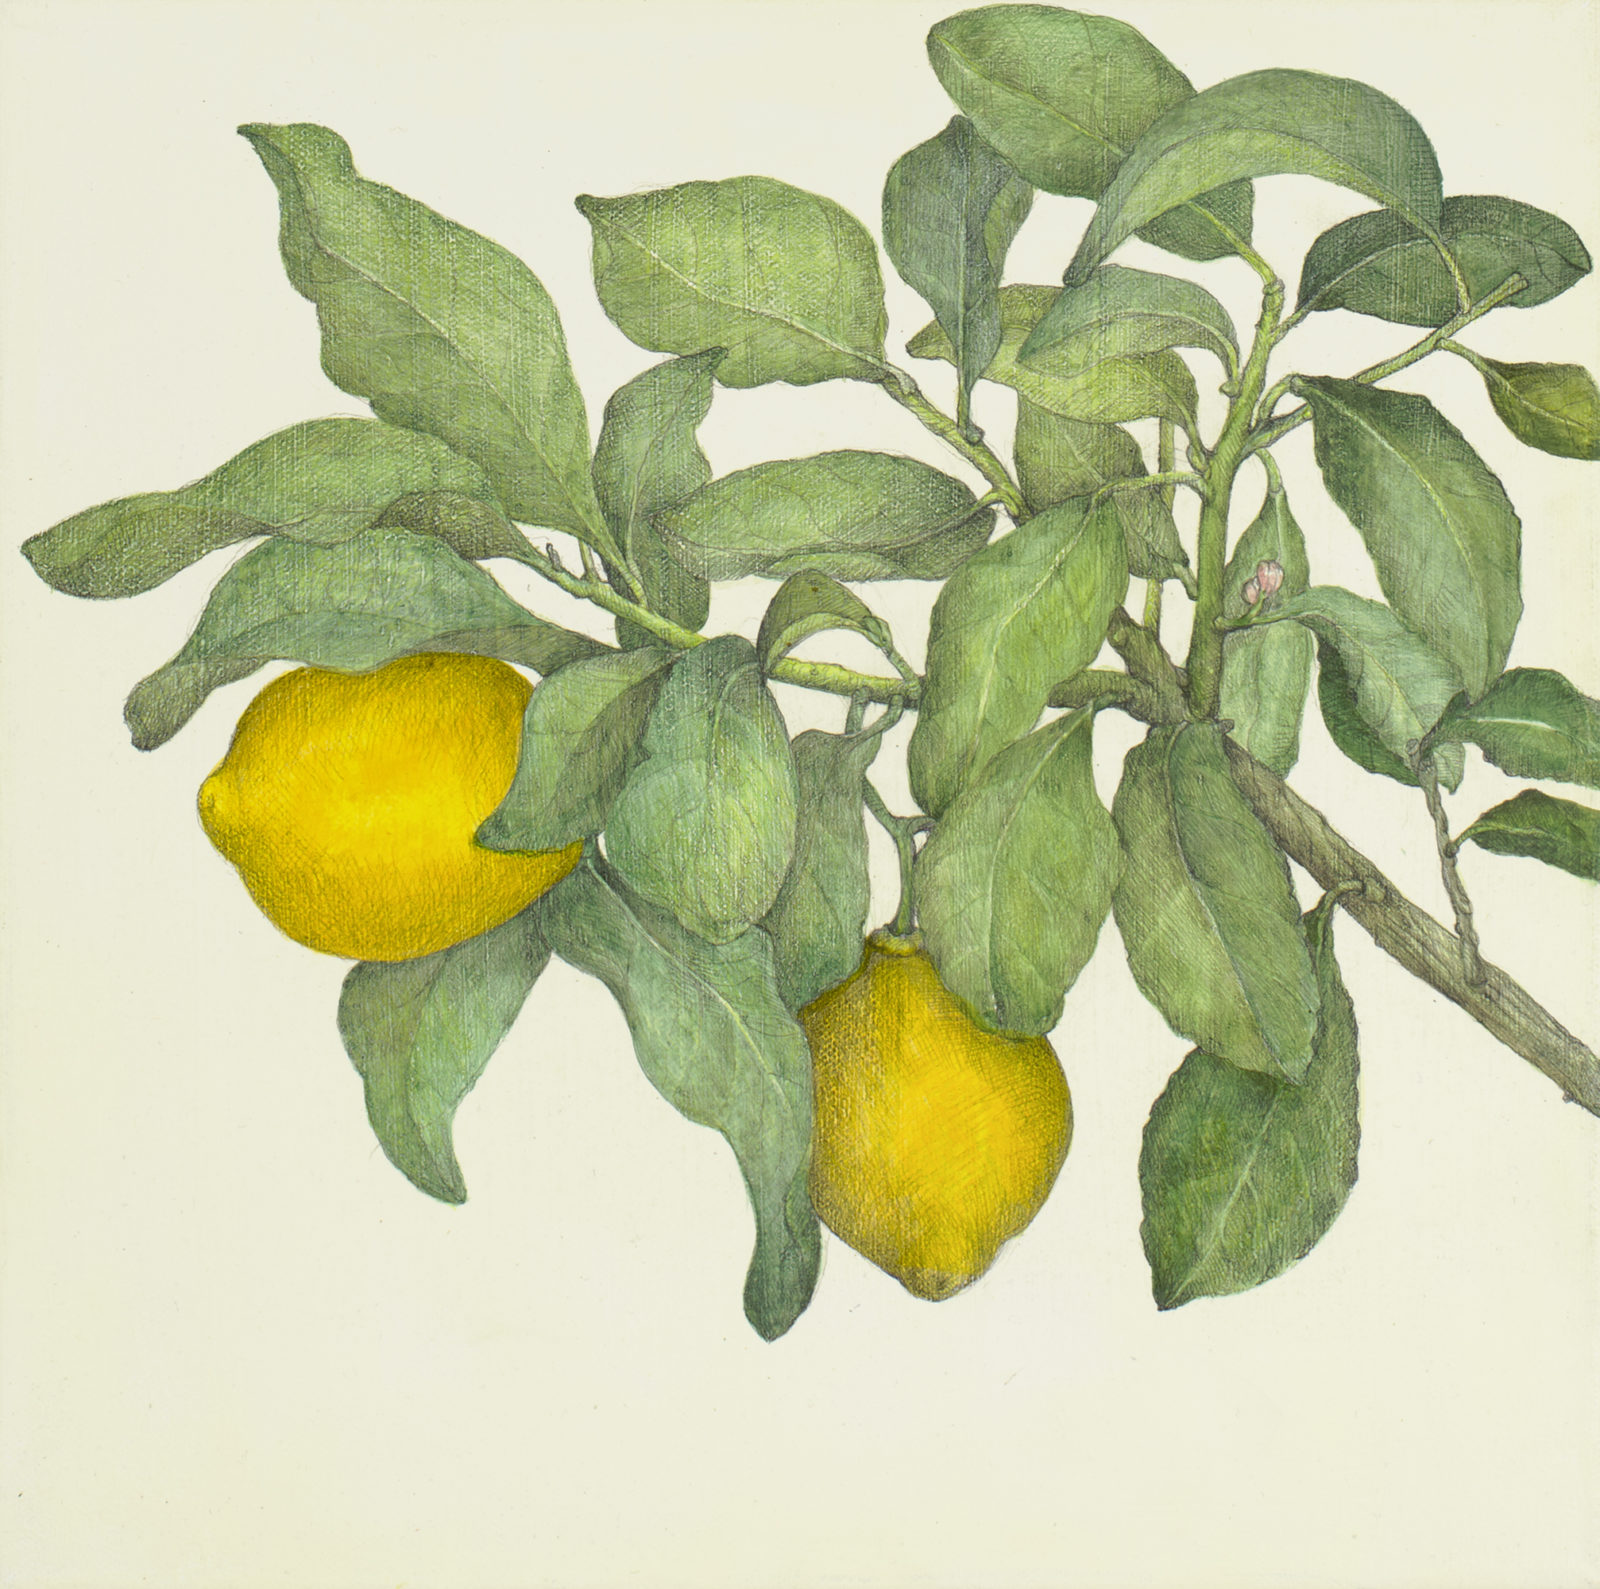 Lemon cadmium + Two lemons